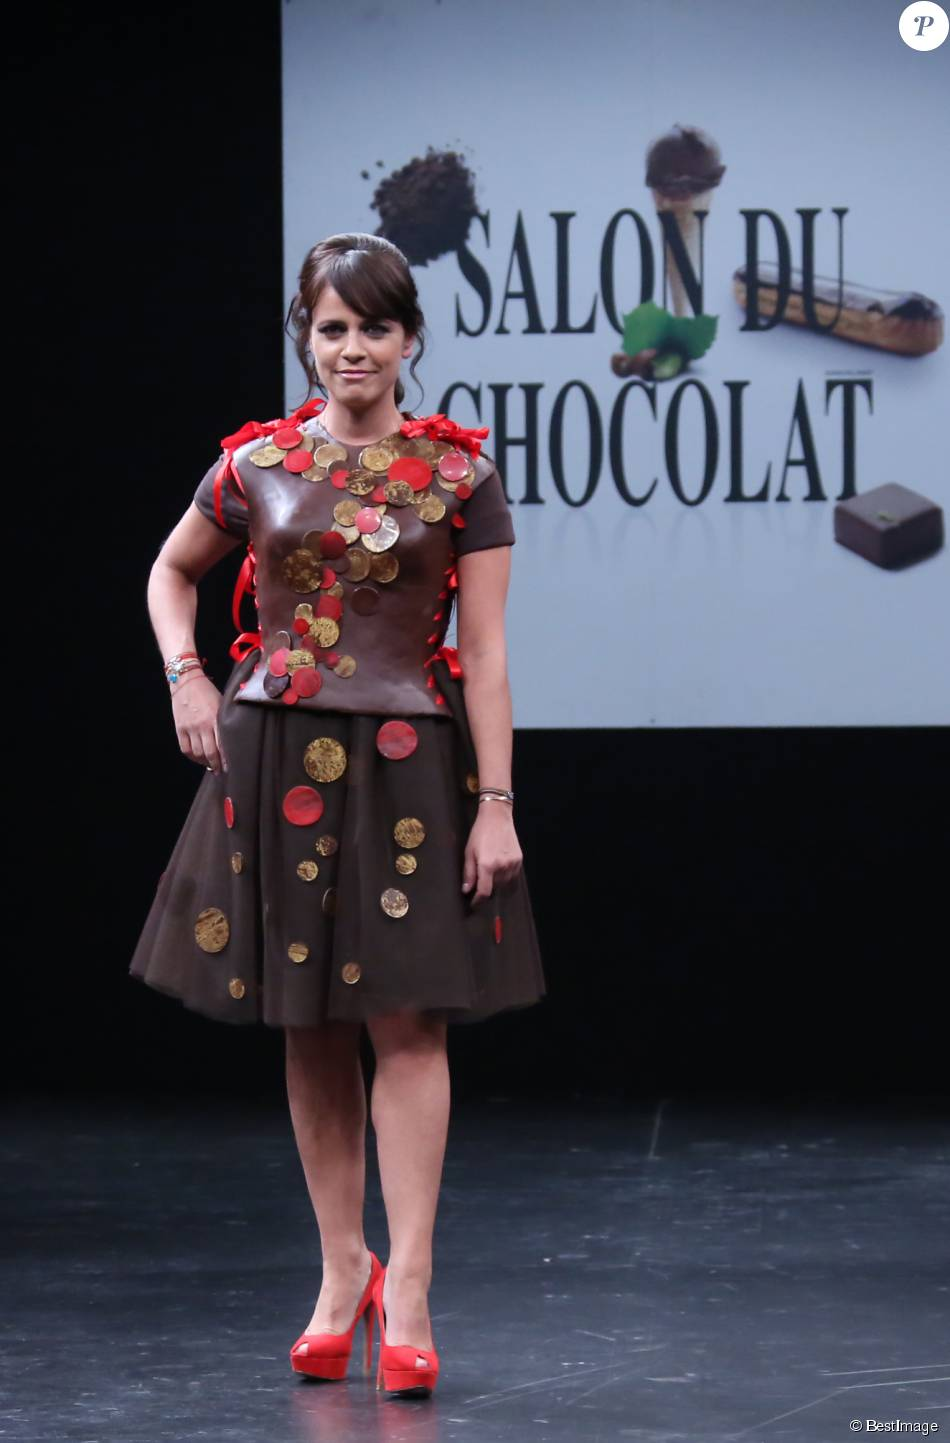 Koxie d fil du 21 me salon du chocolat la porte de for Porte de versailles salon 2015